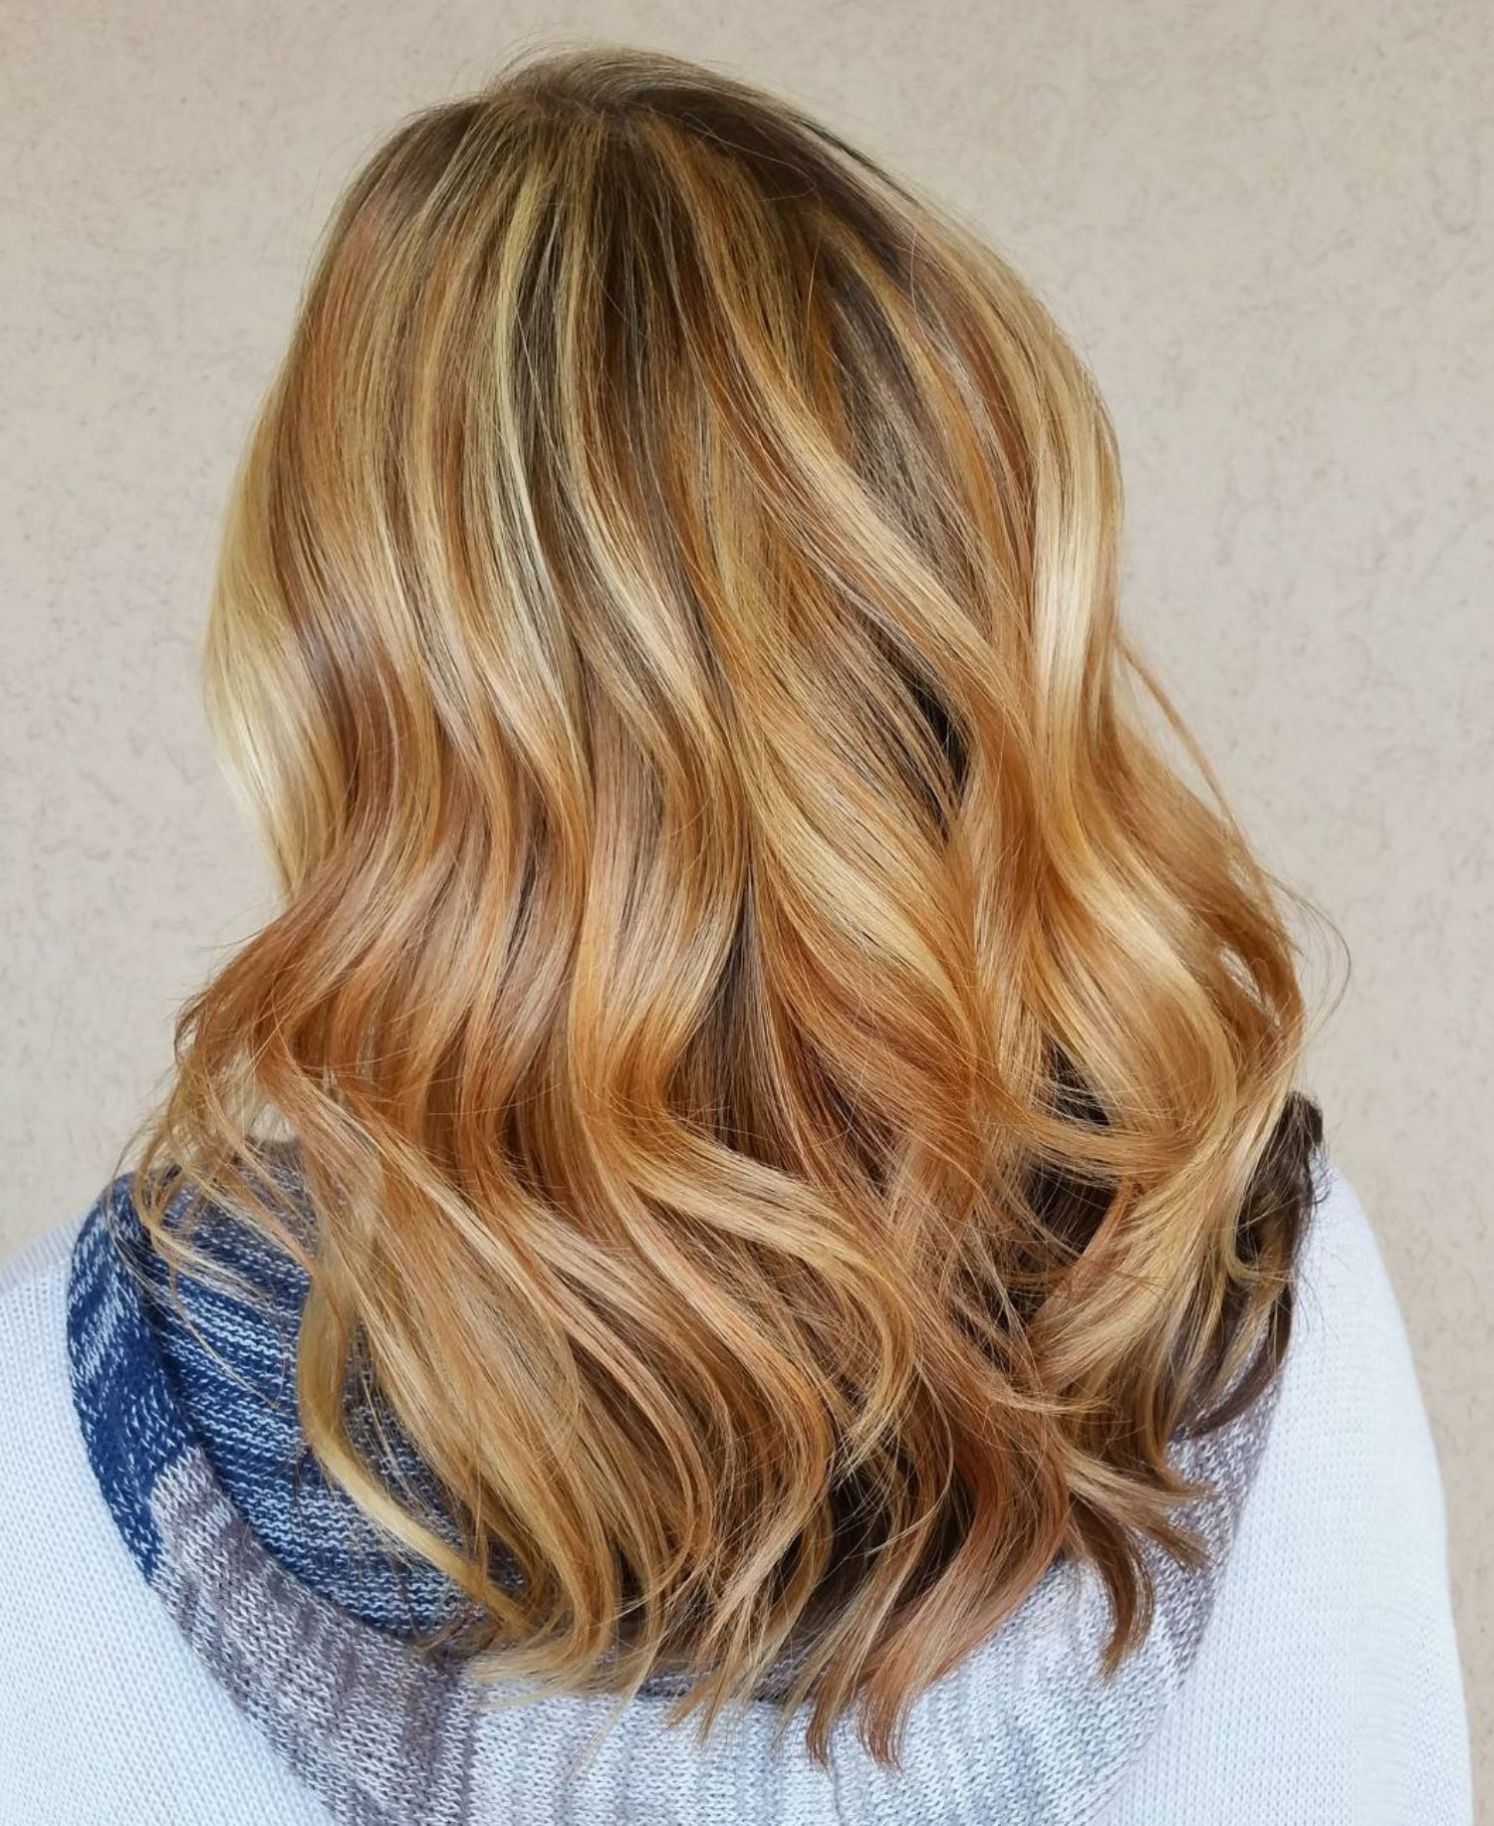 60 Best Strawberry Blonde Hair Ideas To Astonish Everyone Strawberry Blonde Hair Strawberry Blonde Blonde Hair Color